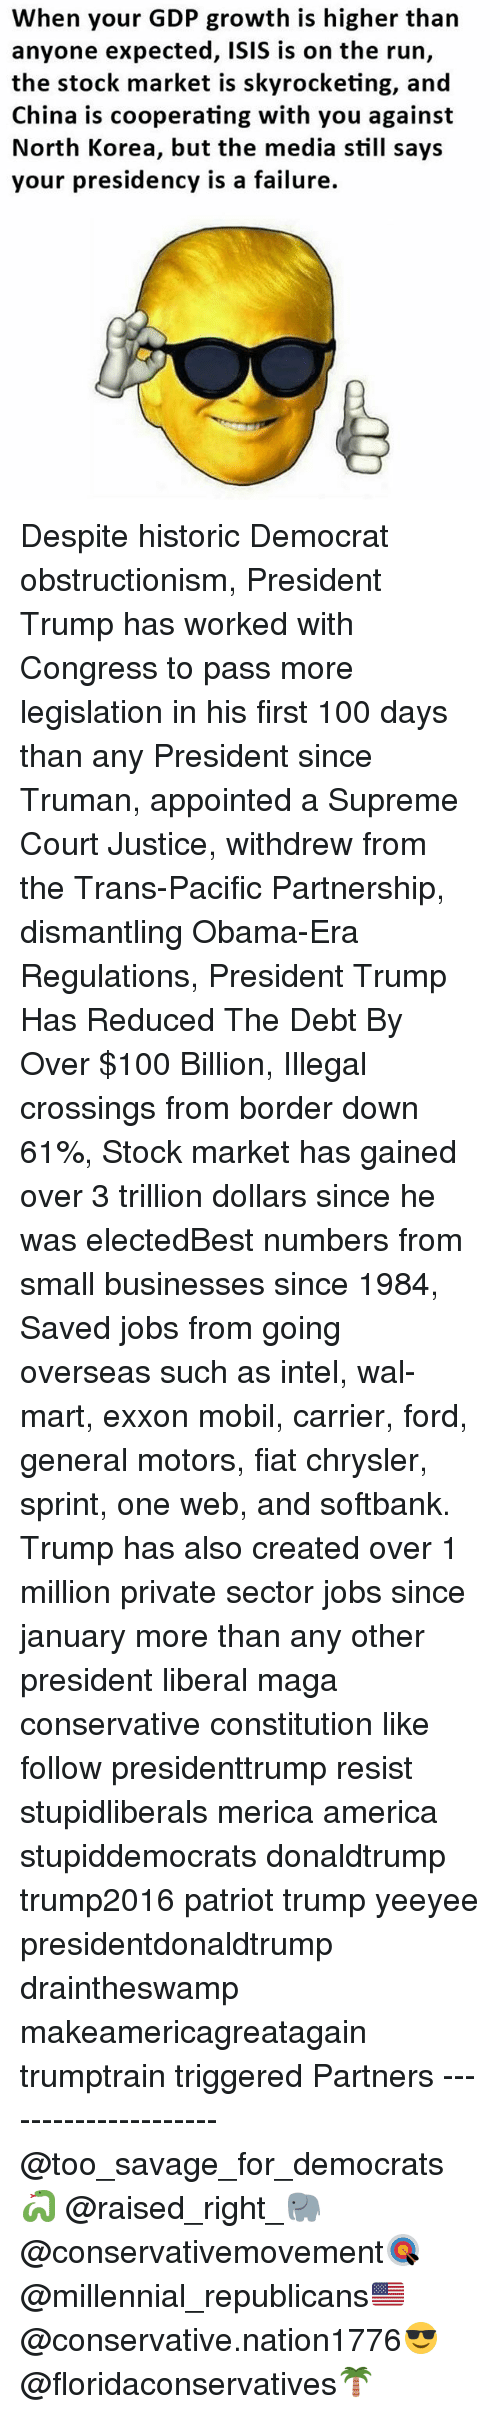 Mobil: When your GDP growth is higher than  anyone expected, ISIS is on the run,  the stock market is skyrocketing, and  China is cooperating with you against  North Korea, but the media still says  your presidency is a failure. Despite historic Democrat obstructionism, President Trump has worked with Congress to pass more legislation in his first 100 days than any President since Truman, appointed a Supreme Court Justice, withdrew from the Trans-Pacific Partnership, dismantling Obama-Era Regulations, President Trump Has Reduced The Debt By Over $100 Billion, Illegal crossings from border down 61%, Stock market has gained over 3 trillion dollars since he was electedBest numbers from small businesses since 1984, Saved jobs from going overseas such as intel, wal-mart, exxon mobil, carrier, ford, general motors, fiat chrysler, sprint, one web, and softbank. Trump has also created over 1 million private sector jobs since january more than any other president liberal maga conservative constitution like follow presidenttrump resist stupidliberals merica america stupiddemocrats donaldtrump trump2016 patriot trump yeeyee presidentdonaldtrump draintheswamp makeamericagreatagain trumptrain triggered Partners --------------------- @too_savage_for_democrats🐍 @raised_right_🐘 @conservativemovement🎯 @millennial_republicans🇺🇸 @conservative.nation1776😎 @floridaconservatives🌴